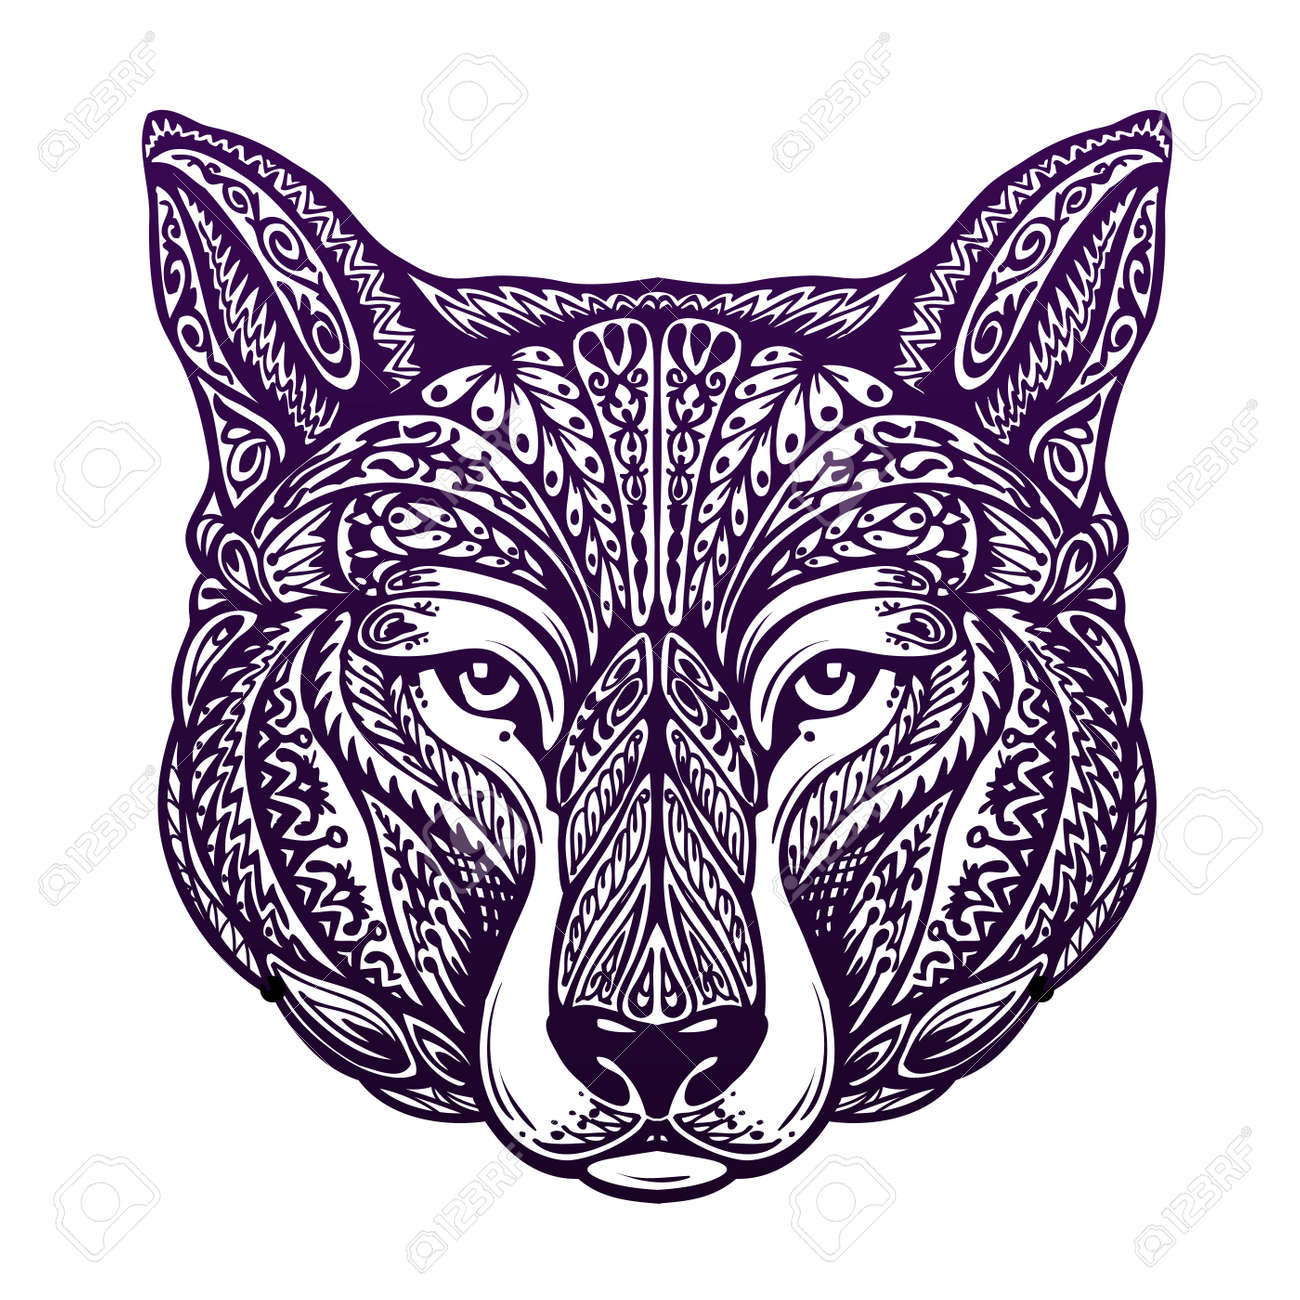 Dog, wolf painted tribal ethnic ornament. Vector illustration - 62204613